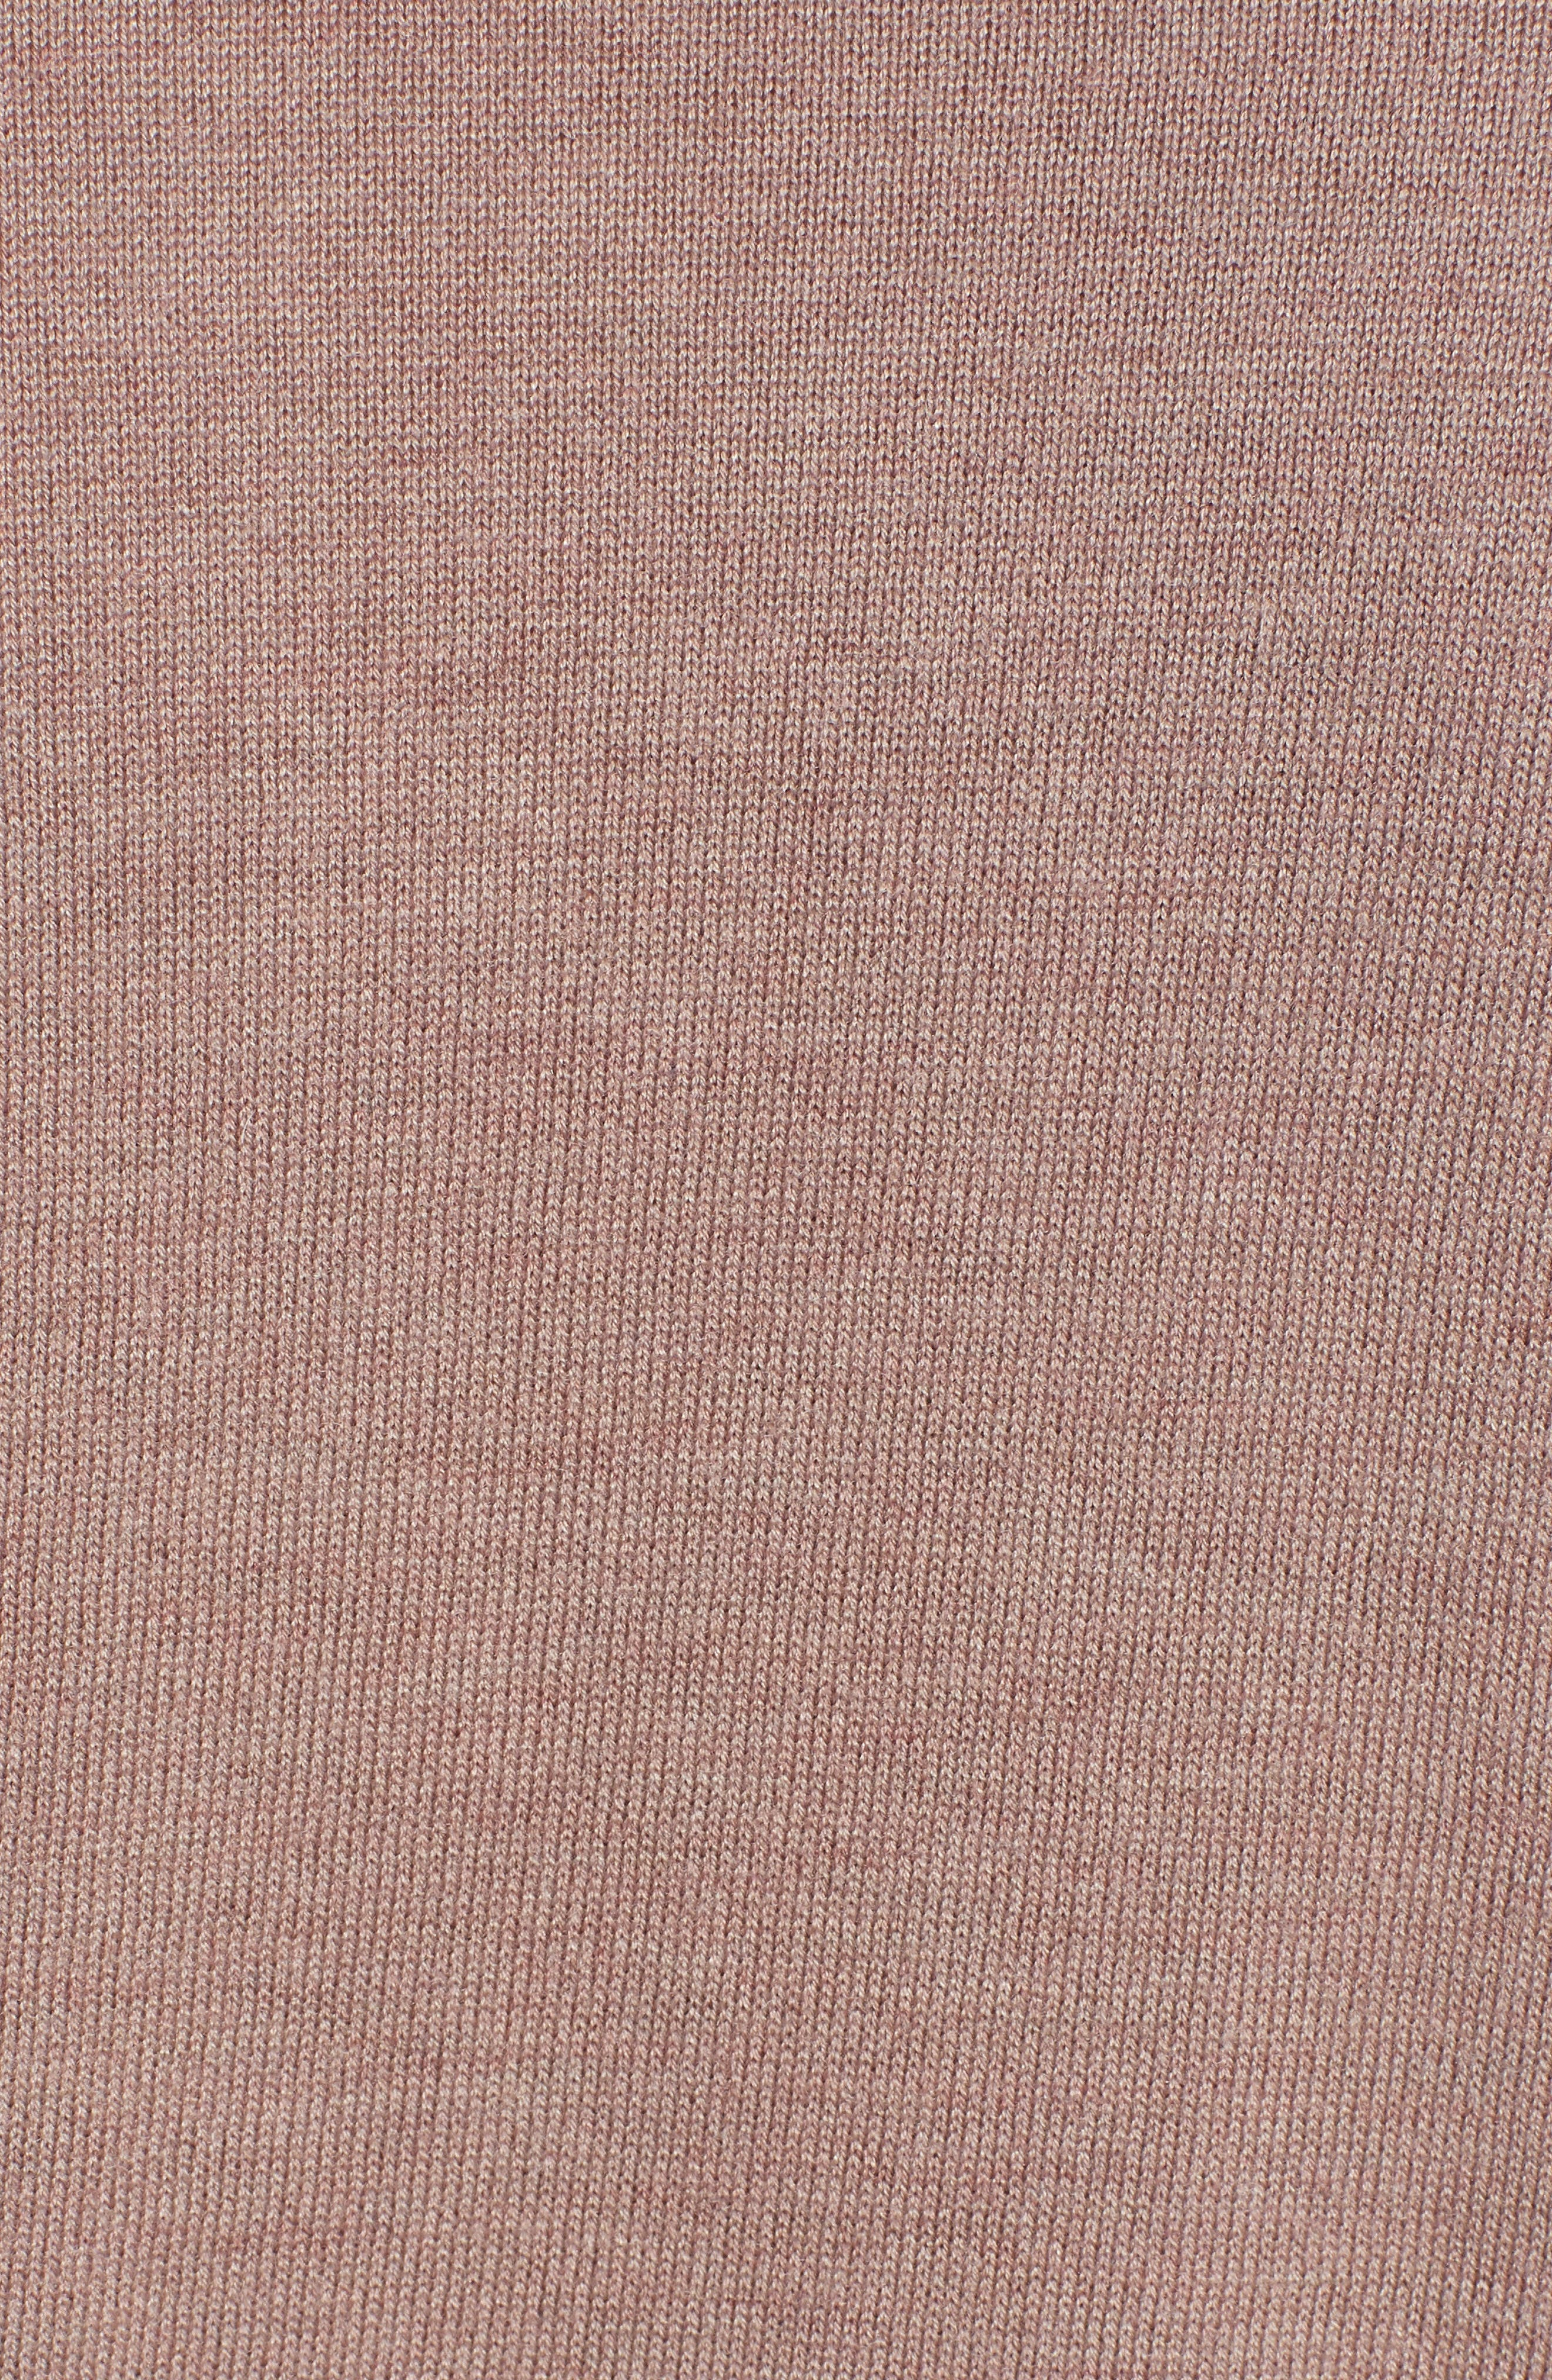 CHELSEA28,                             V-Neck Sweater,                             Alternate thumbnail 5, color,                             PINK FAWN HEATHER COMBO